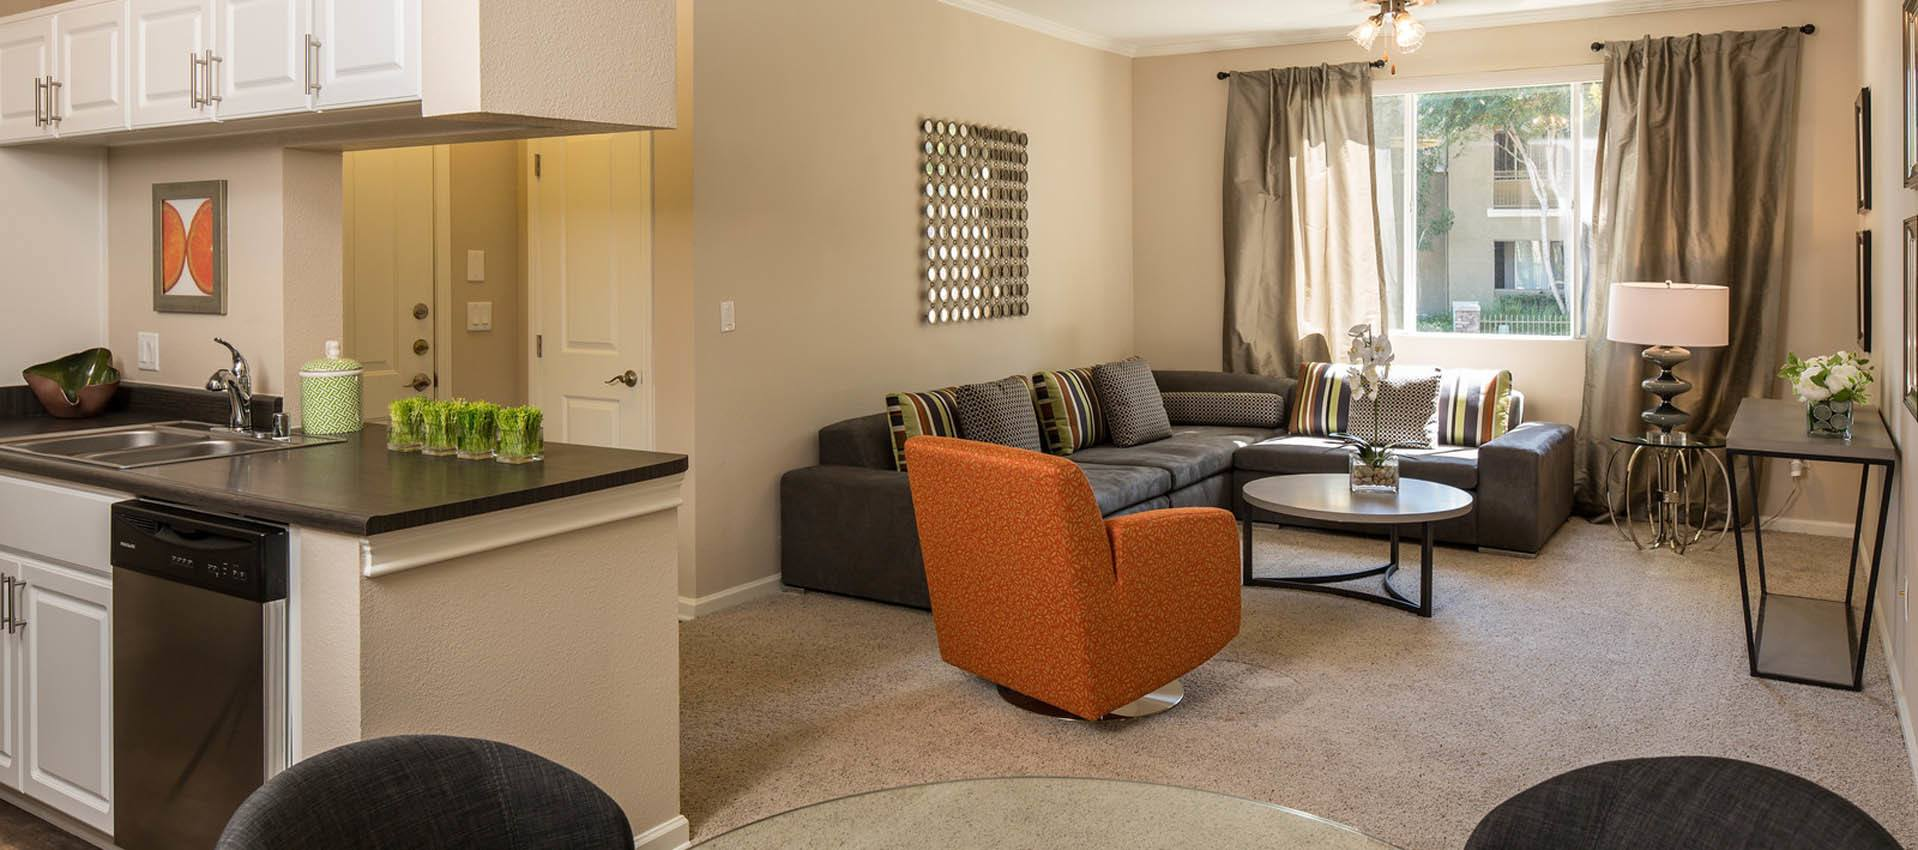 Feel at home in your new apartment at Alicante Apartment Homes in Aliso Viejo, CA